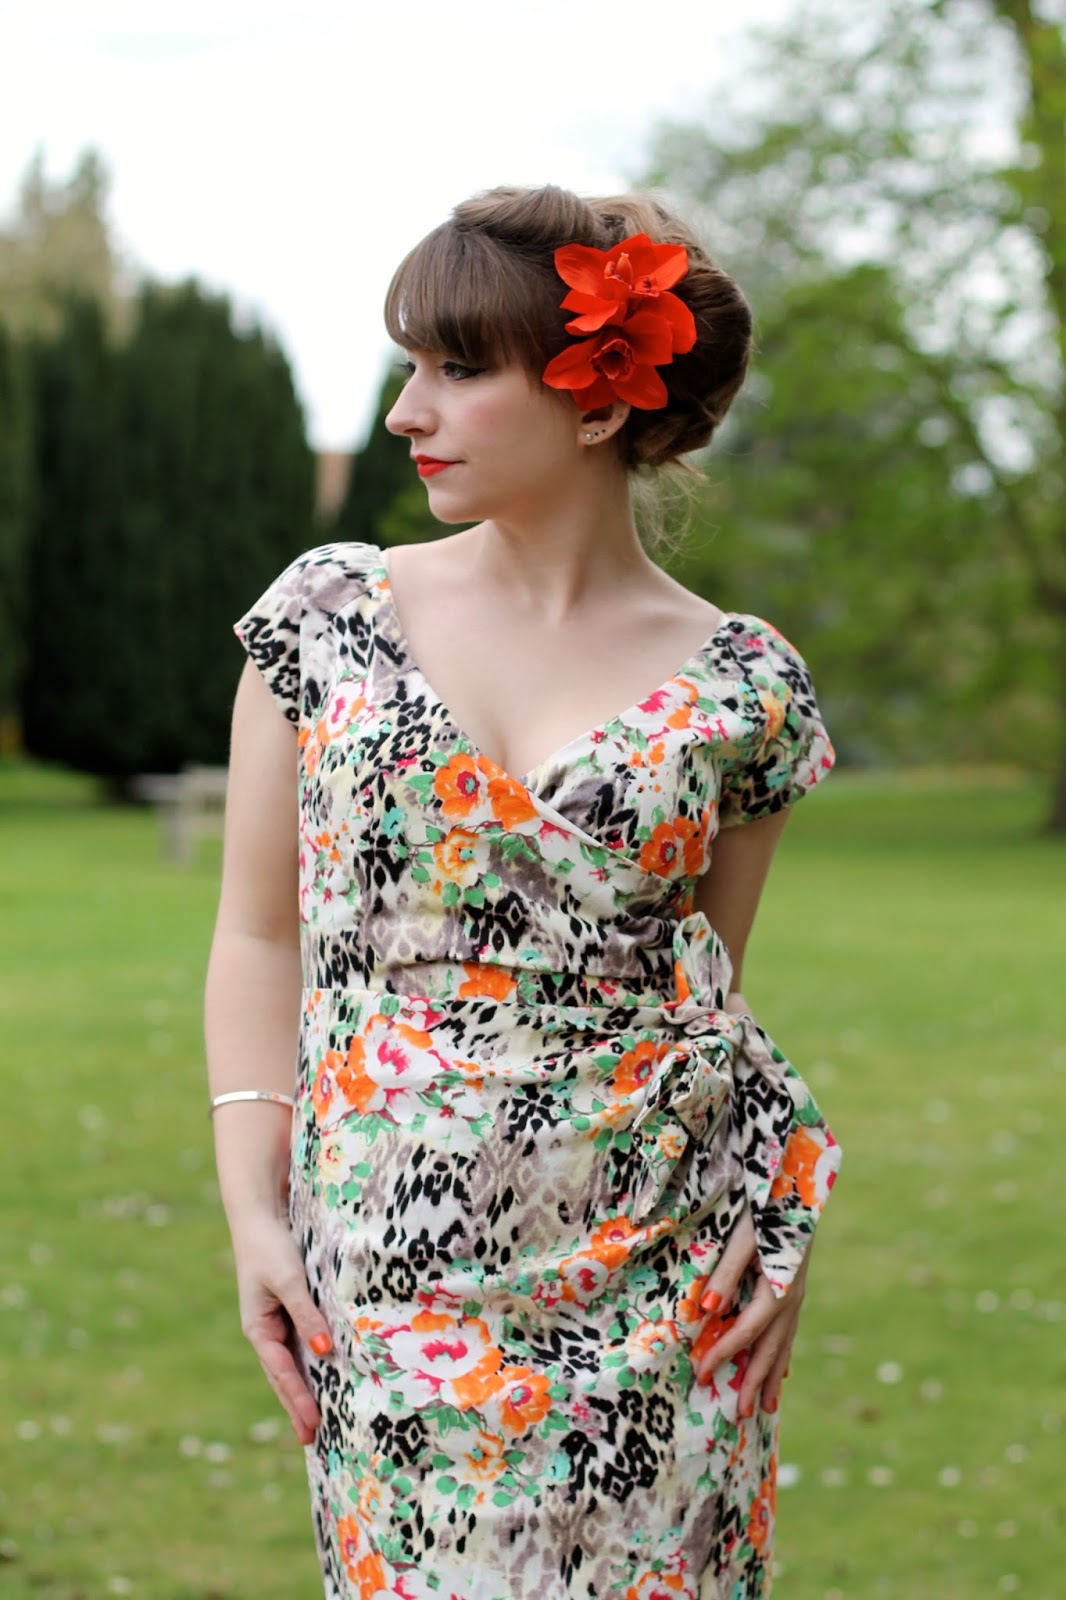 Whispering Ivy dress and Sophisticated Flowers hair piece